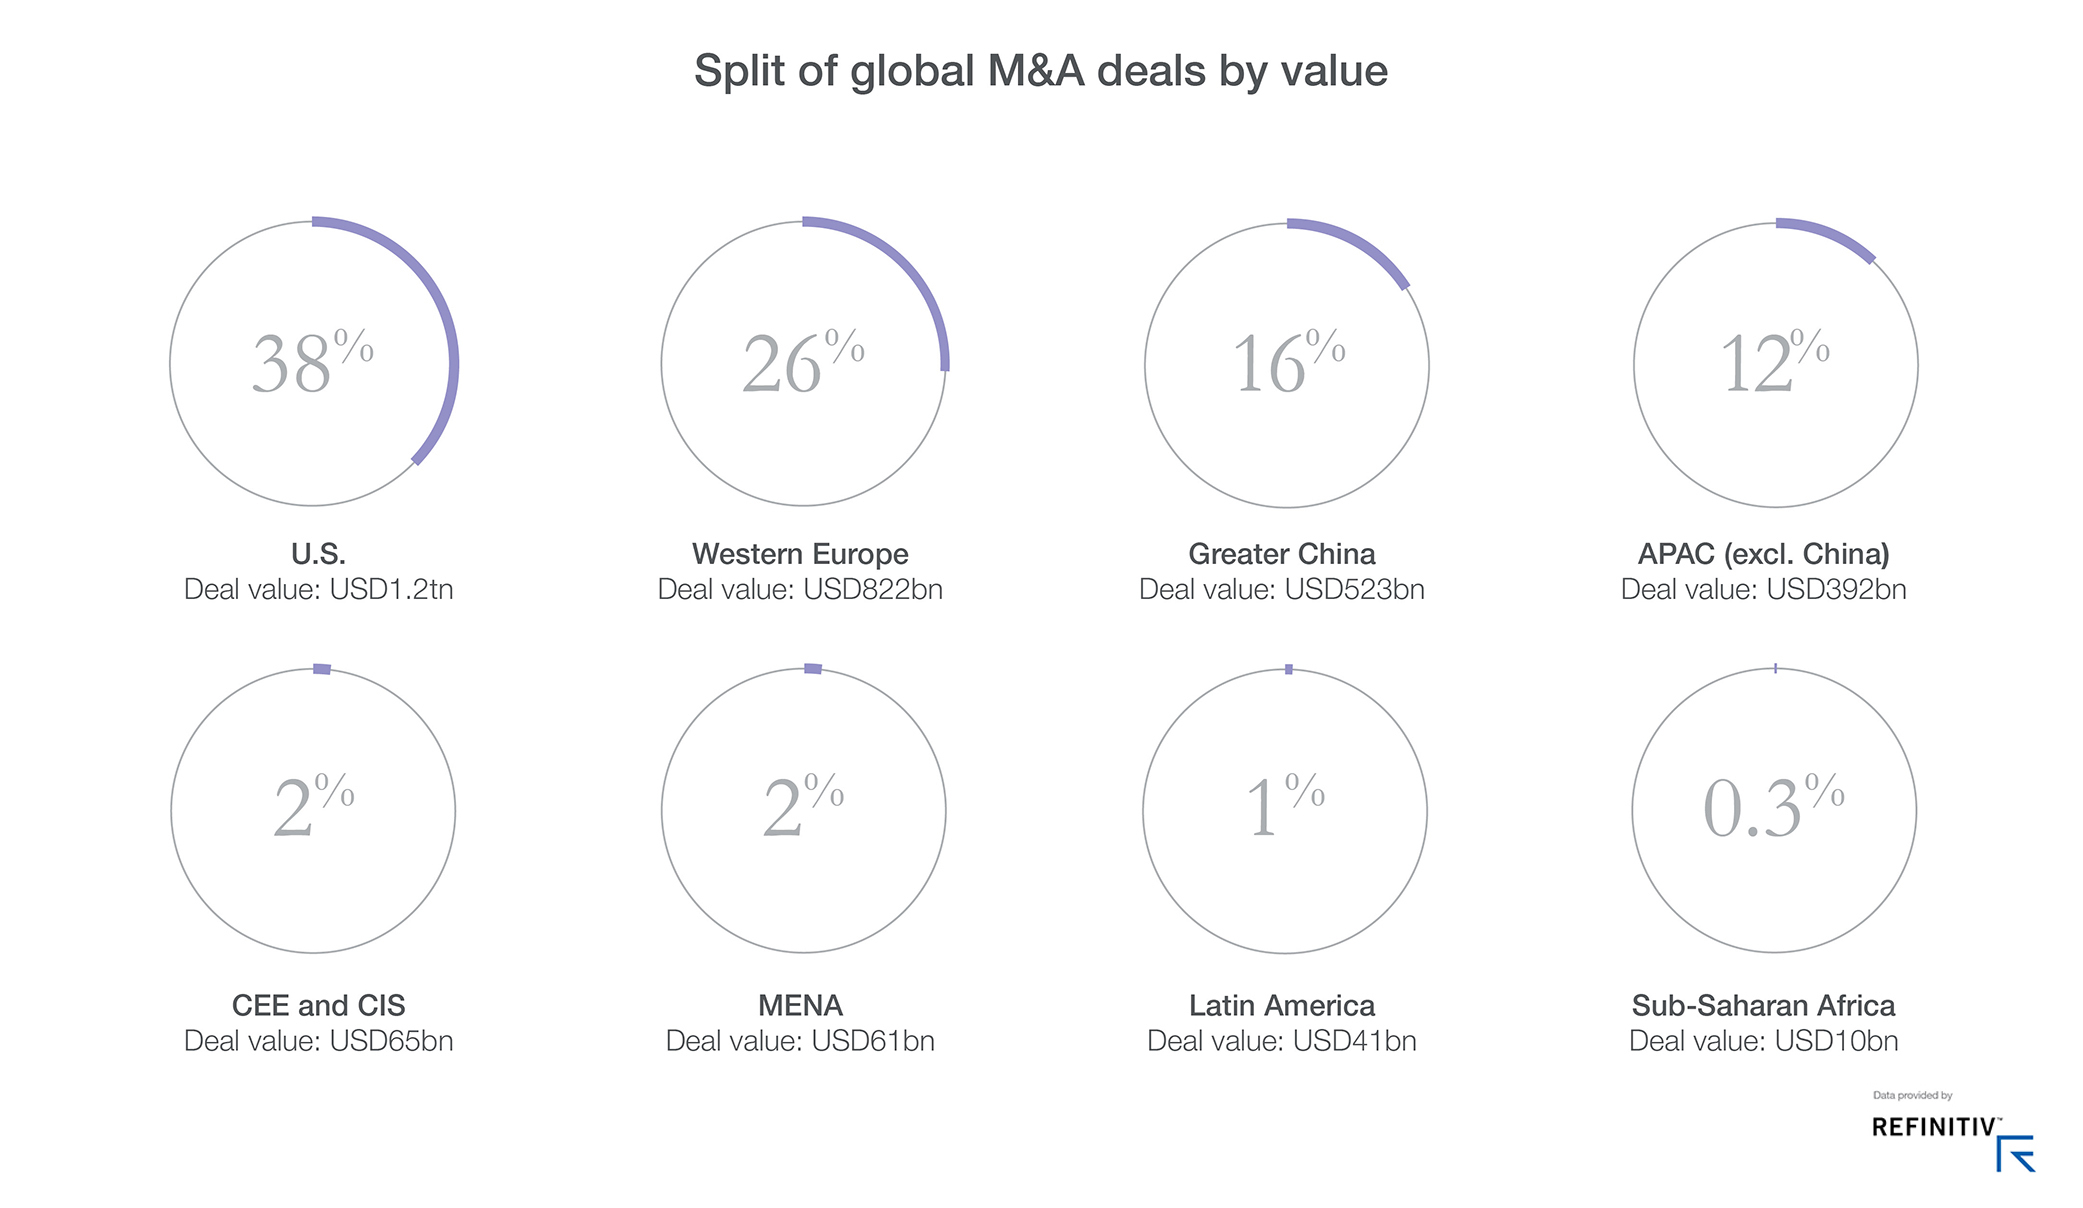 Graph showing split of global deals by value